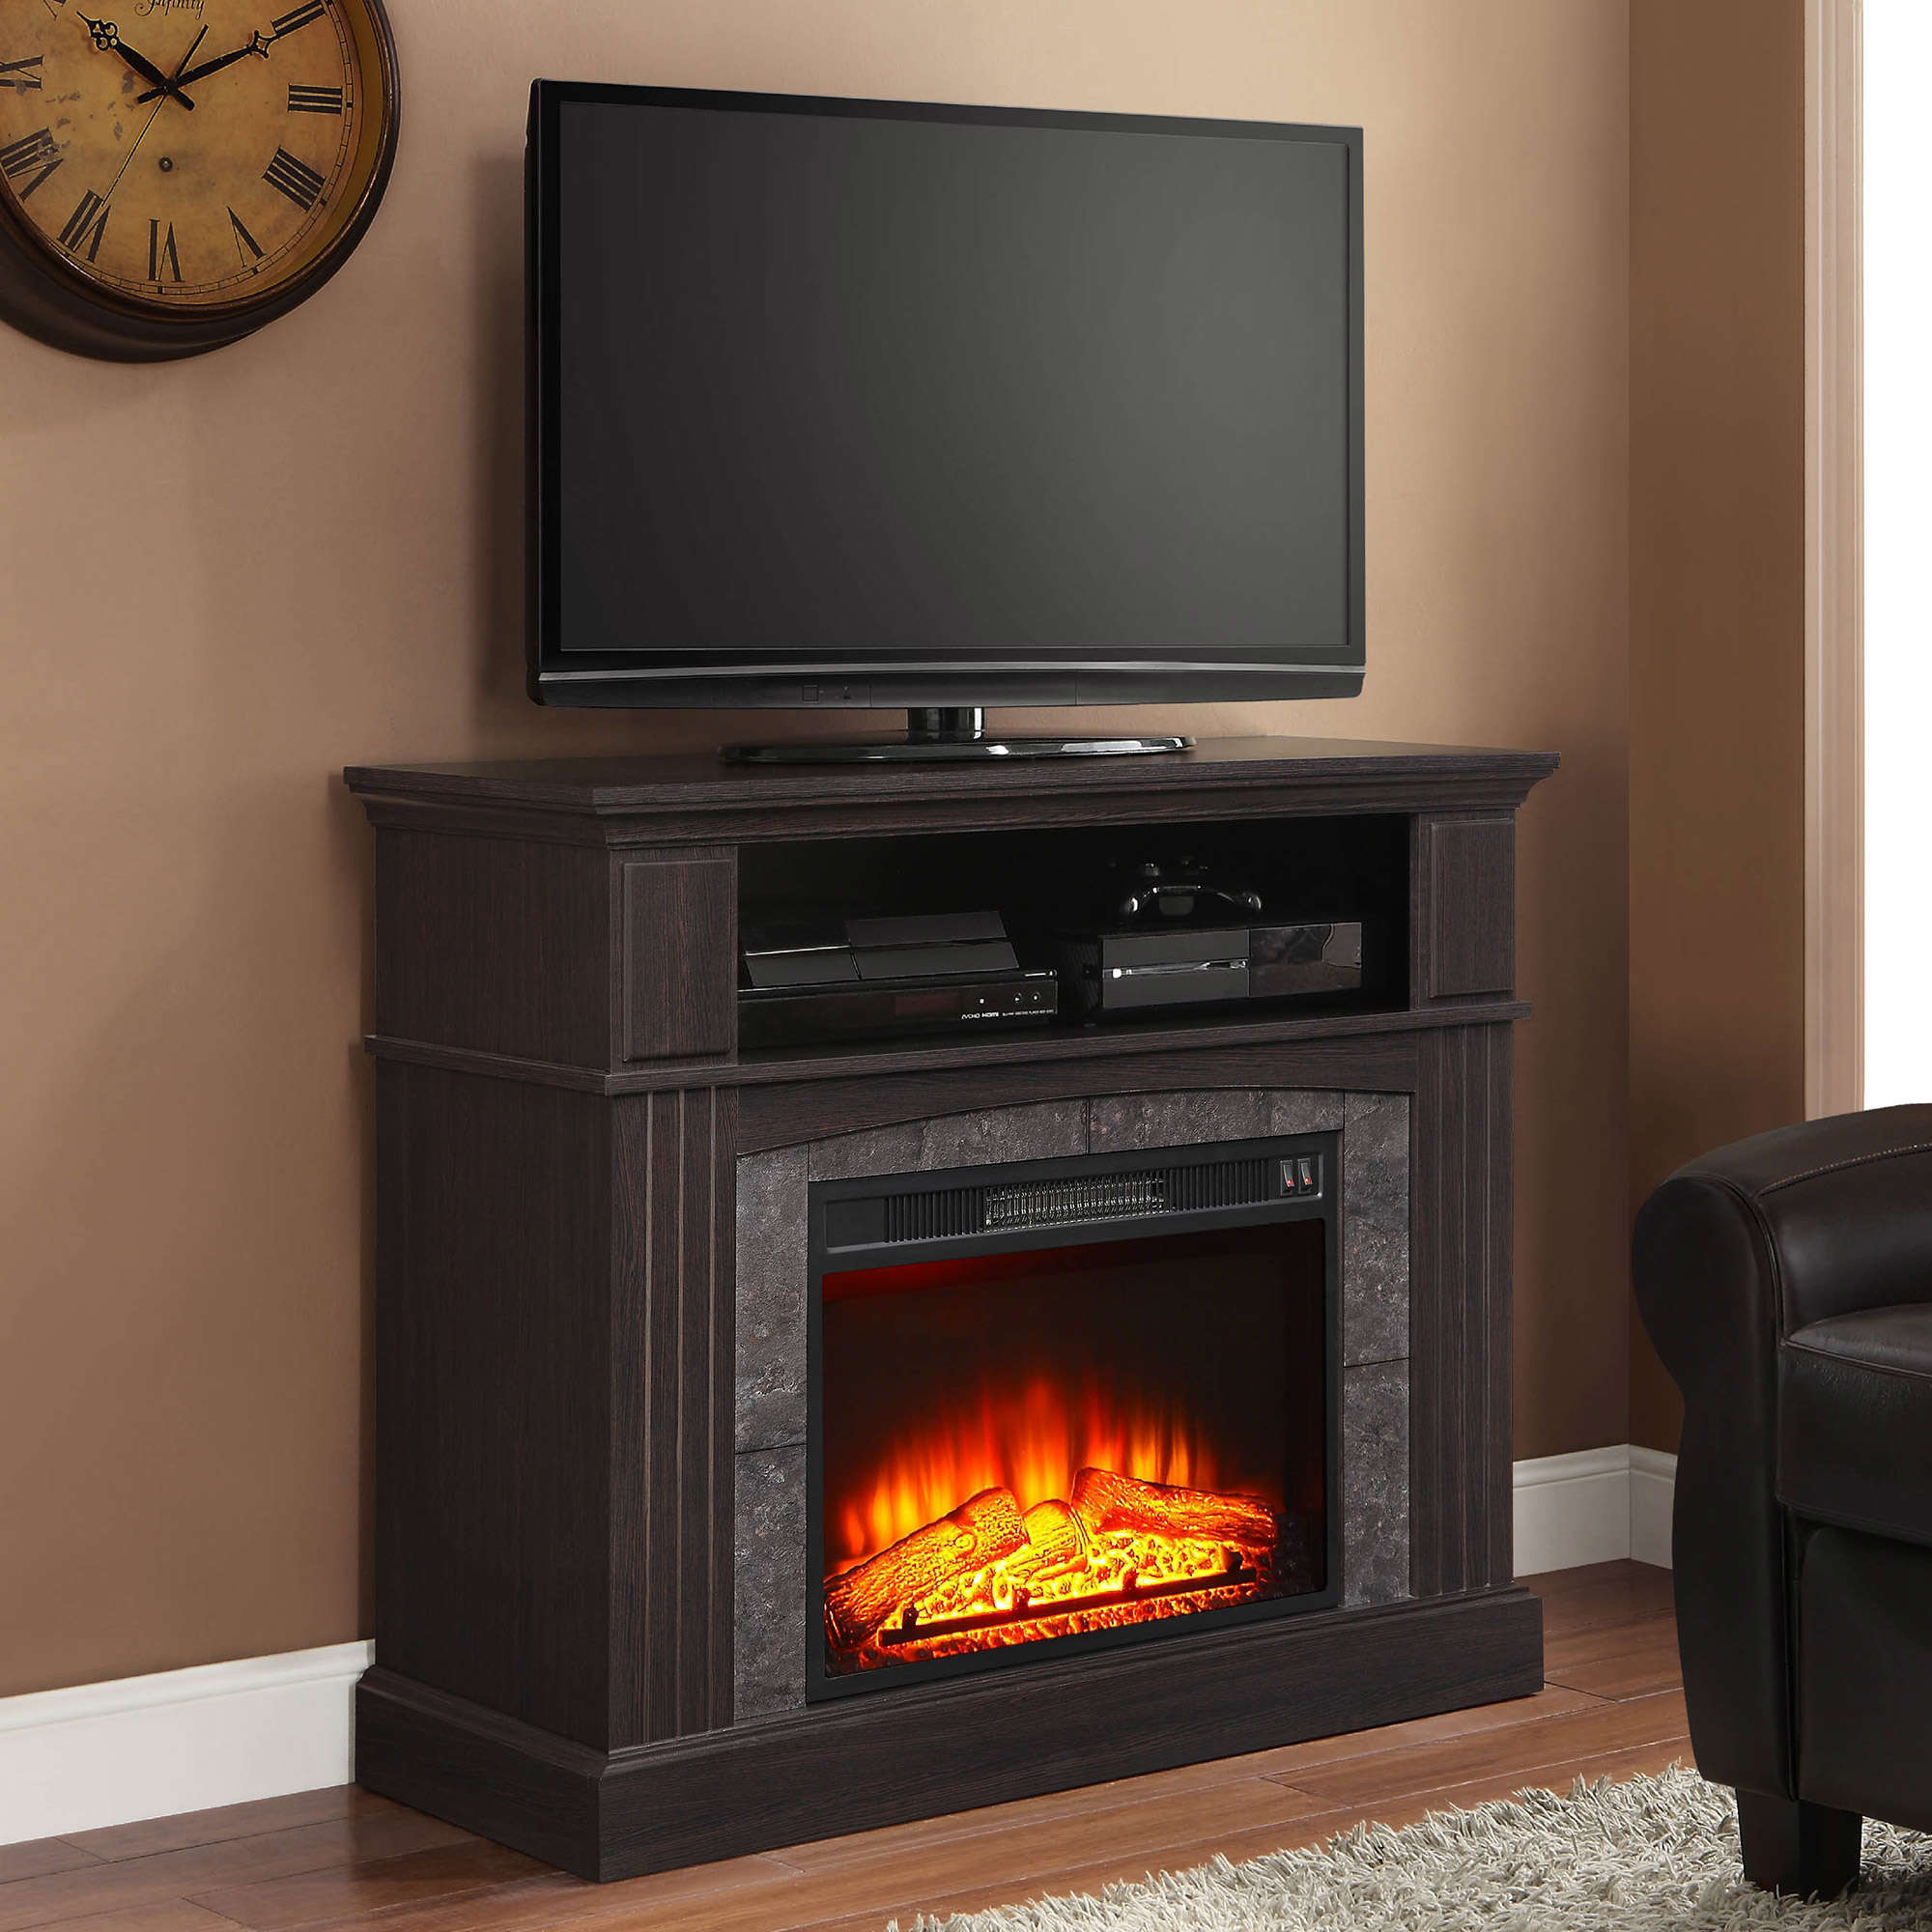 """Whalen Media Fireplace for Your Home, Television Stand fits TVs up to 50,"""" Espresso Finish"""